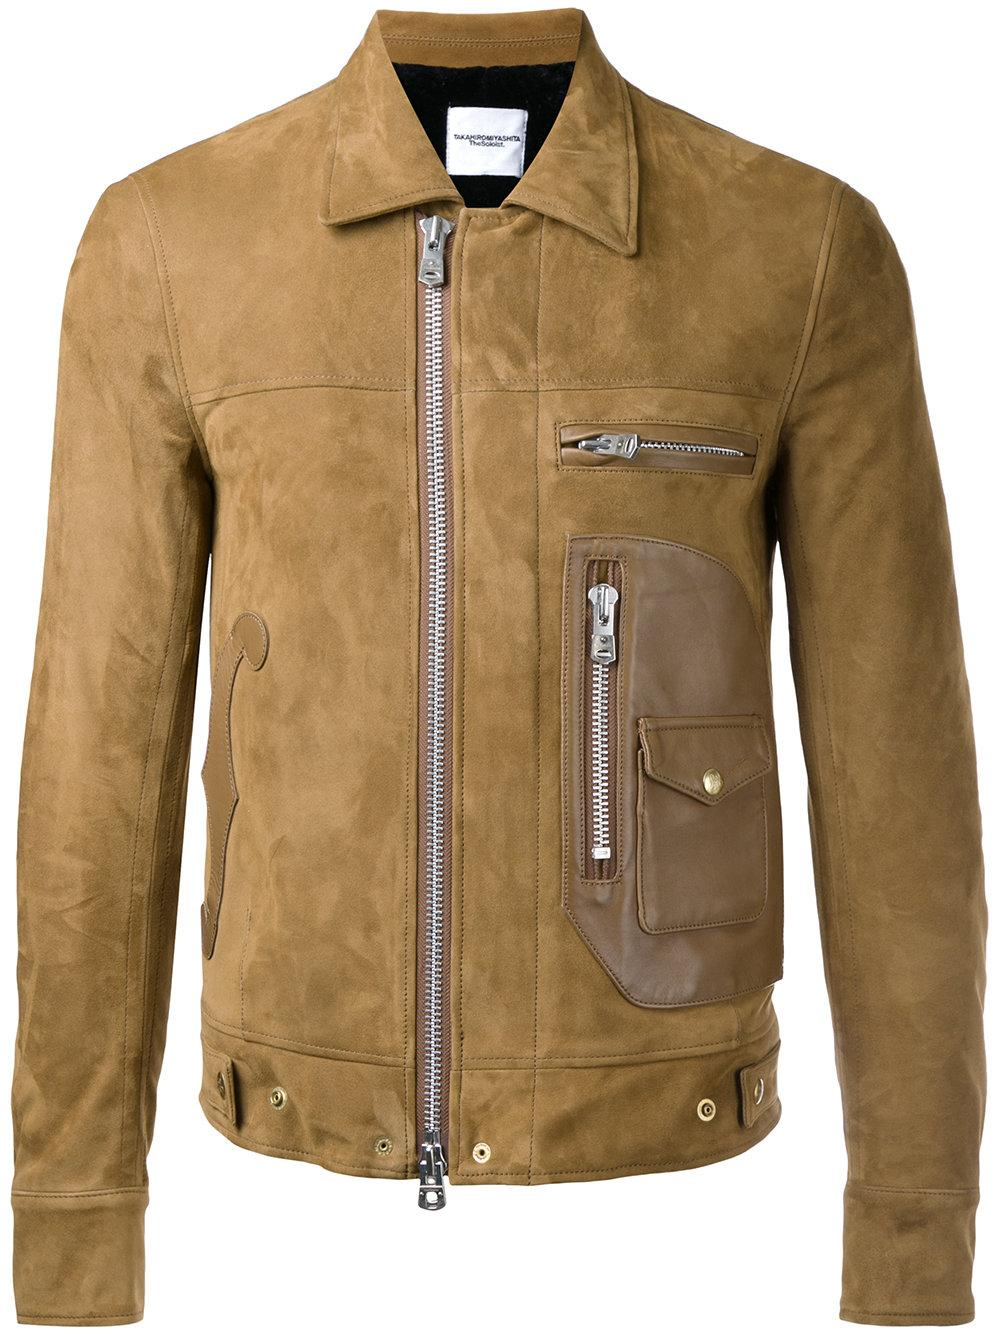 11976768-BROWN-5cffbc3c- Top Brands for Leather Jackets-15 Most Popular Brands 2017 for Men